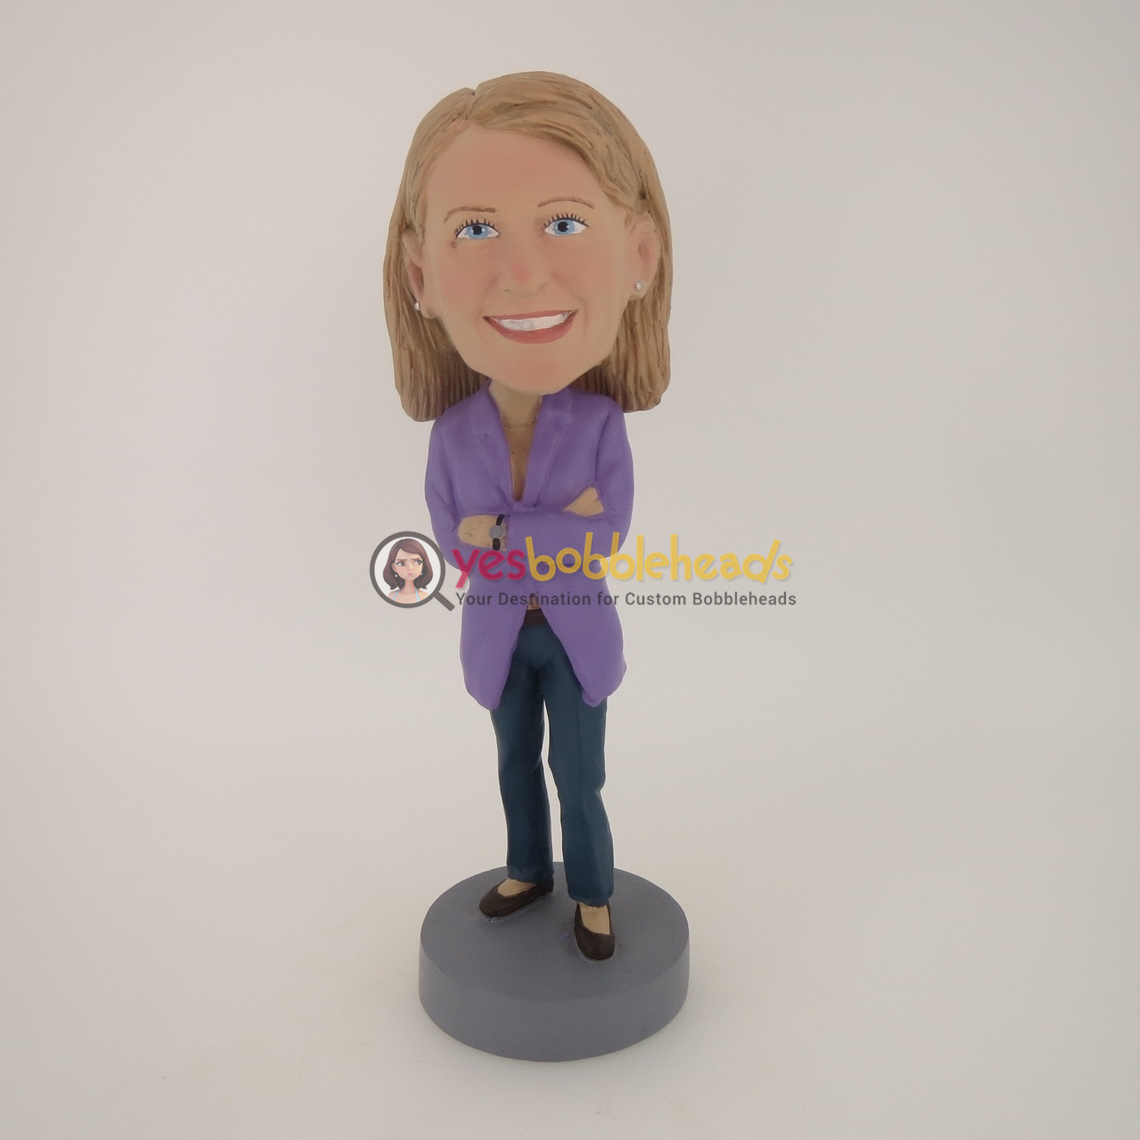 Picture of Custom Bobblehead Doll: Purple Jacket Girl